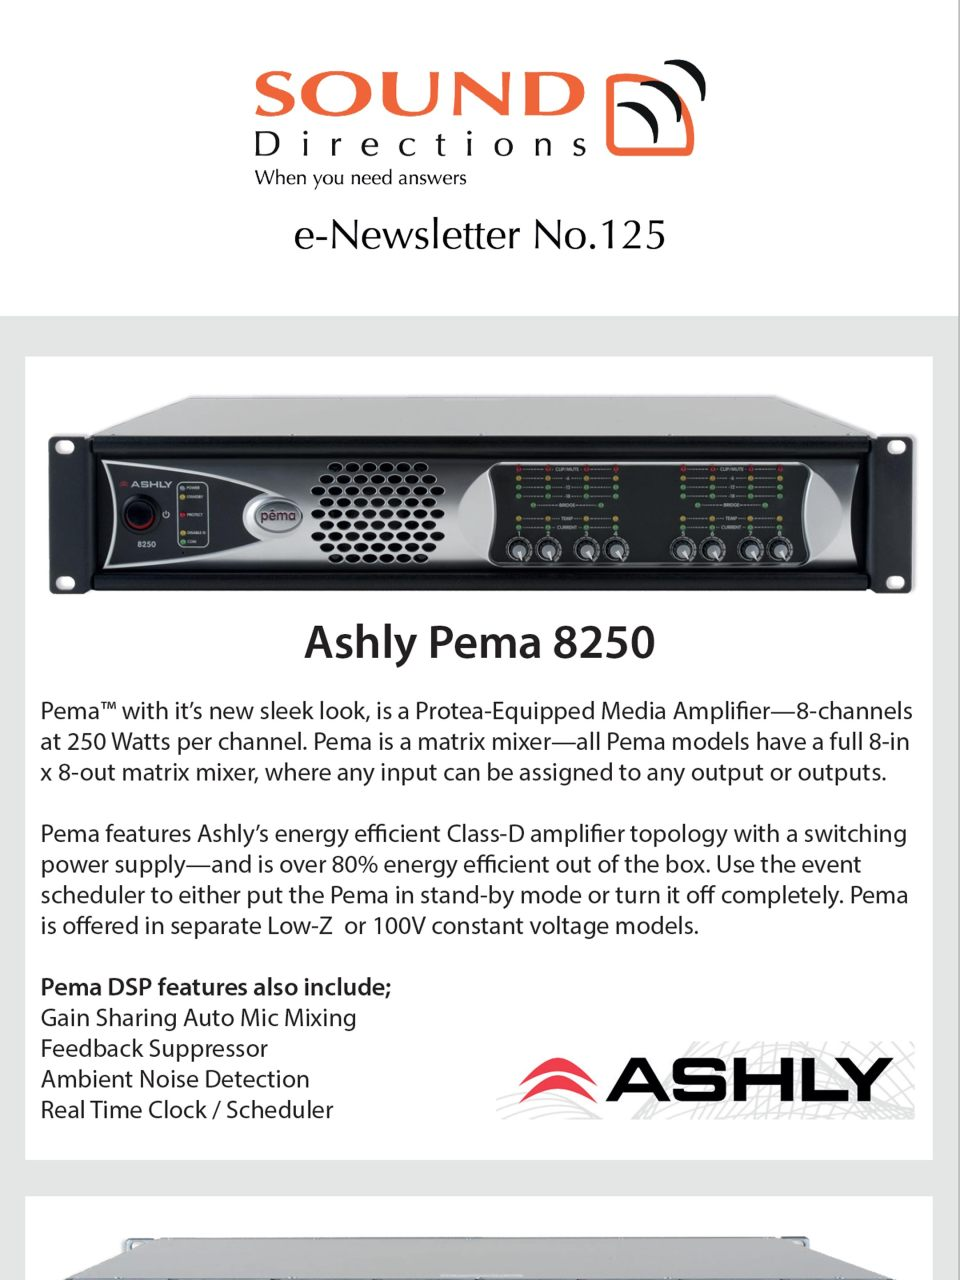 Sound-Directions-e-Newsletter-No.125-Image